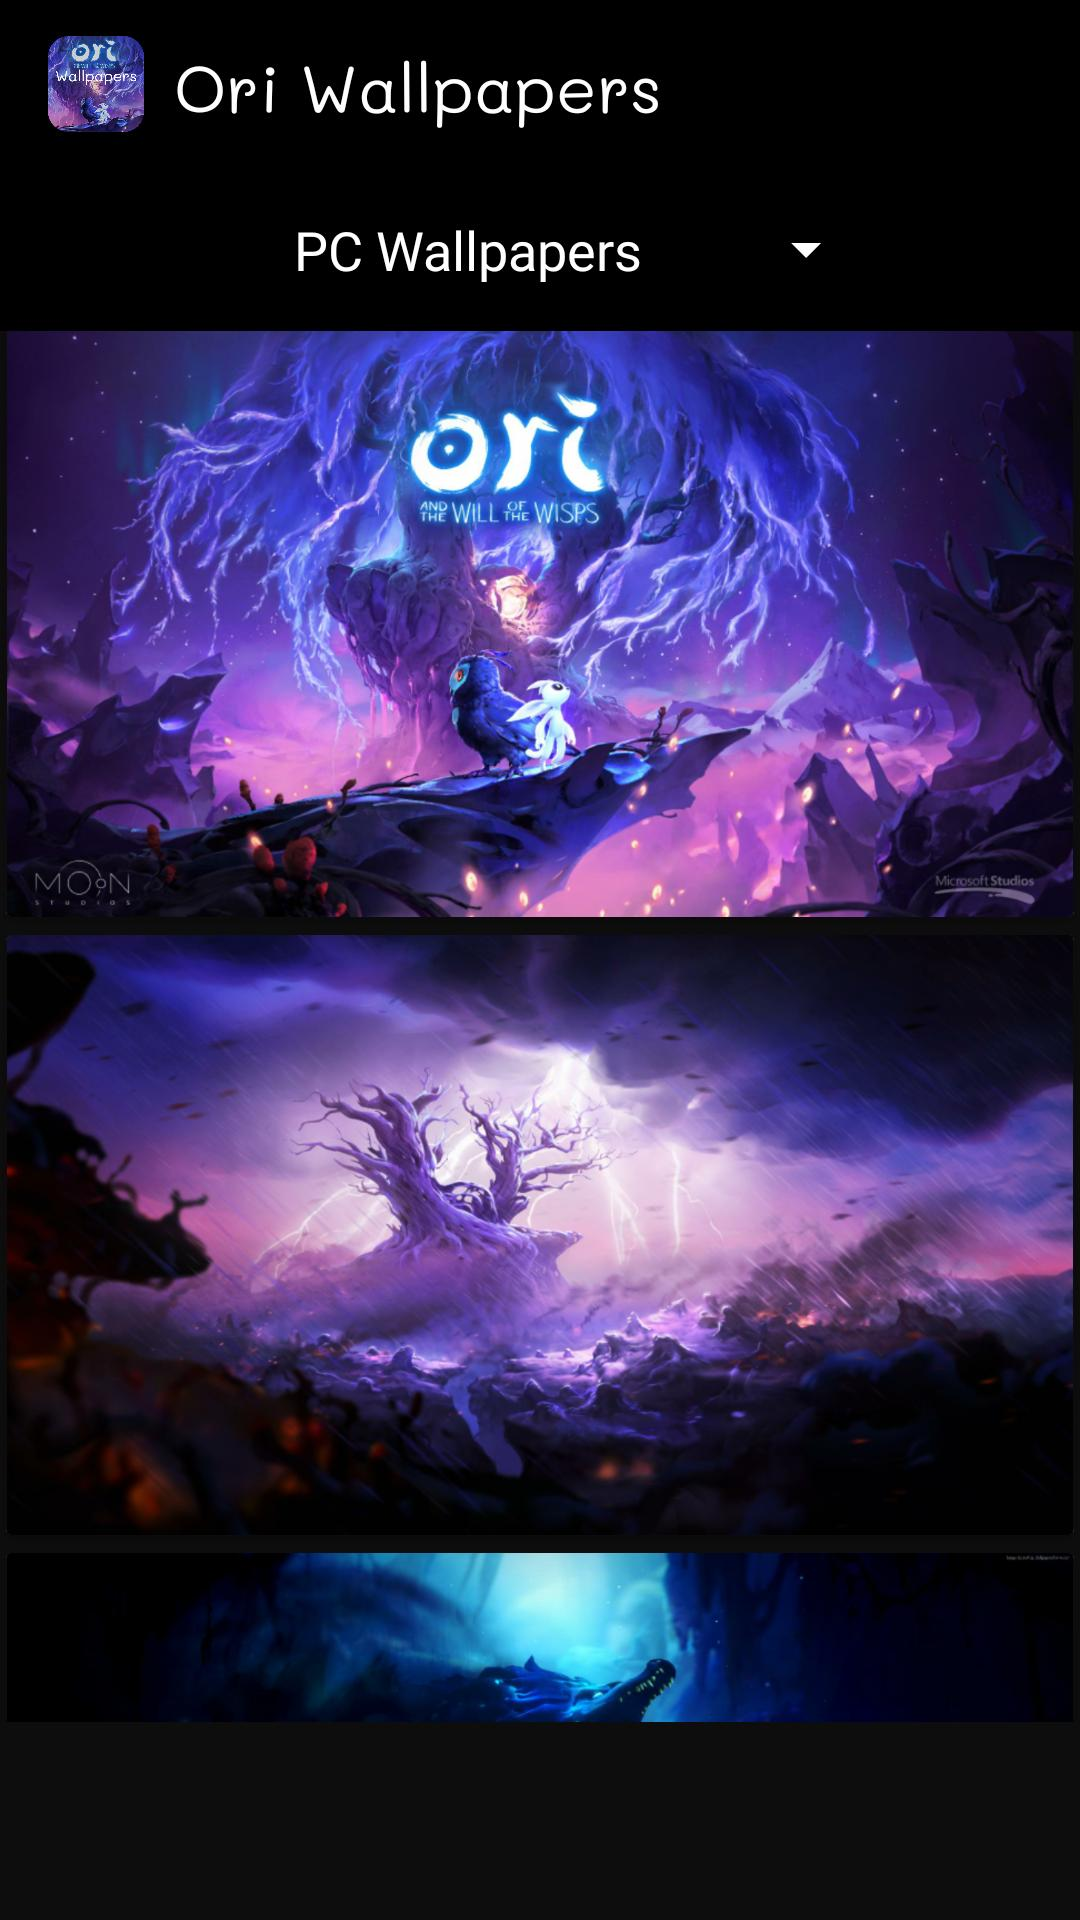 Wallpapers Of Ori And The Will Of The Wisps For Android Apk Download